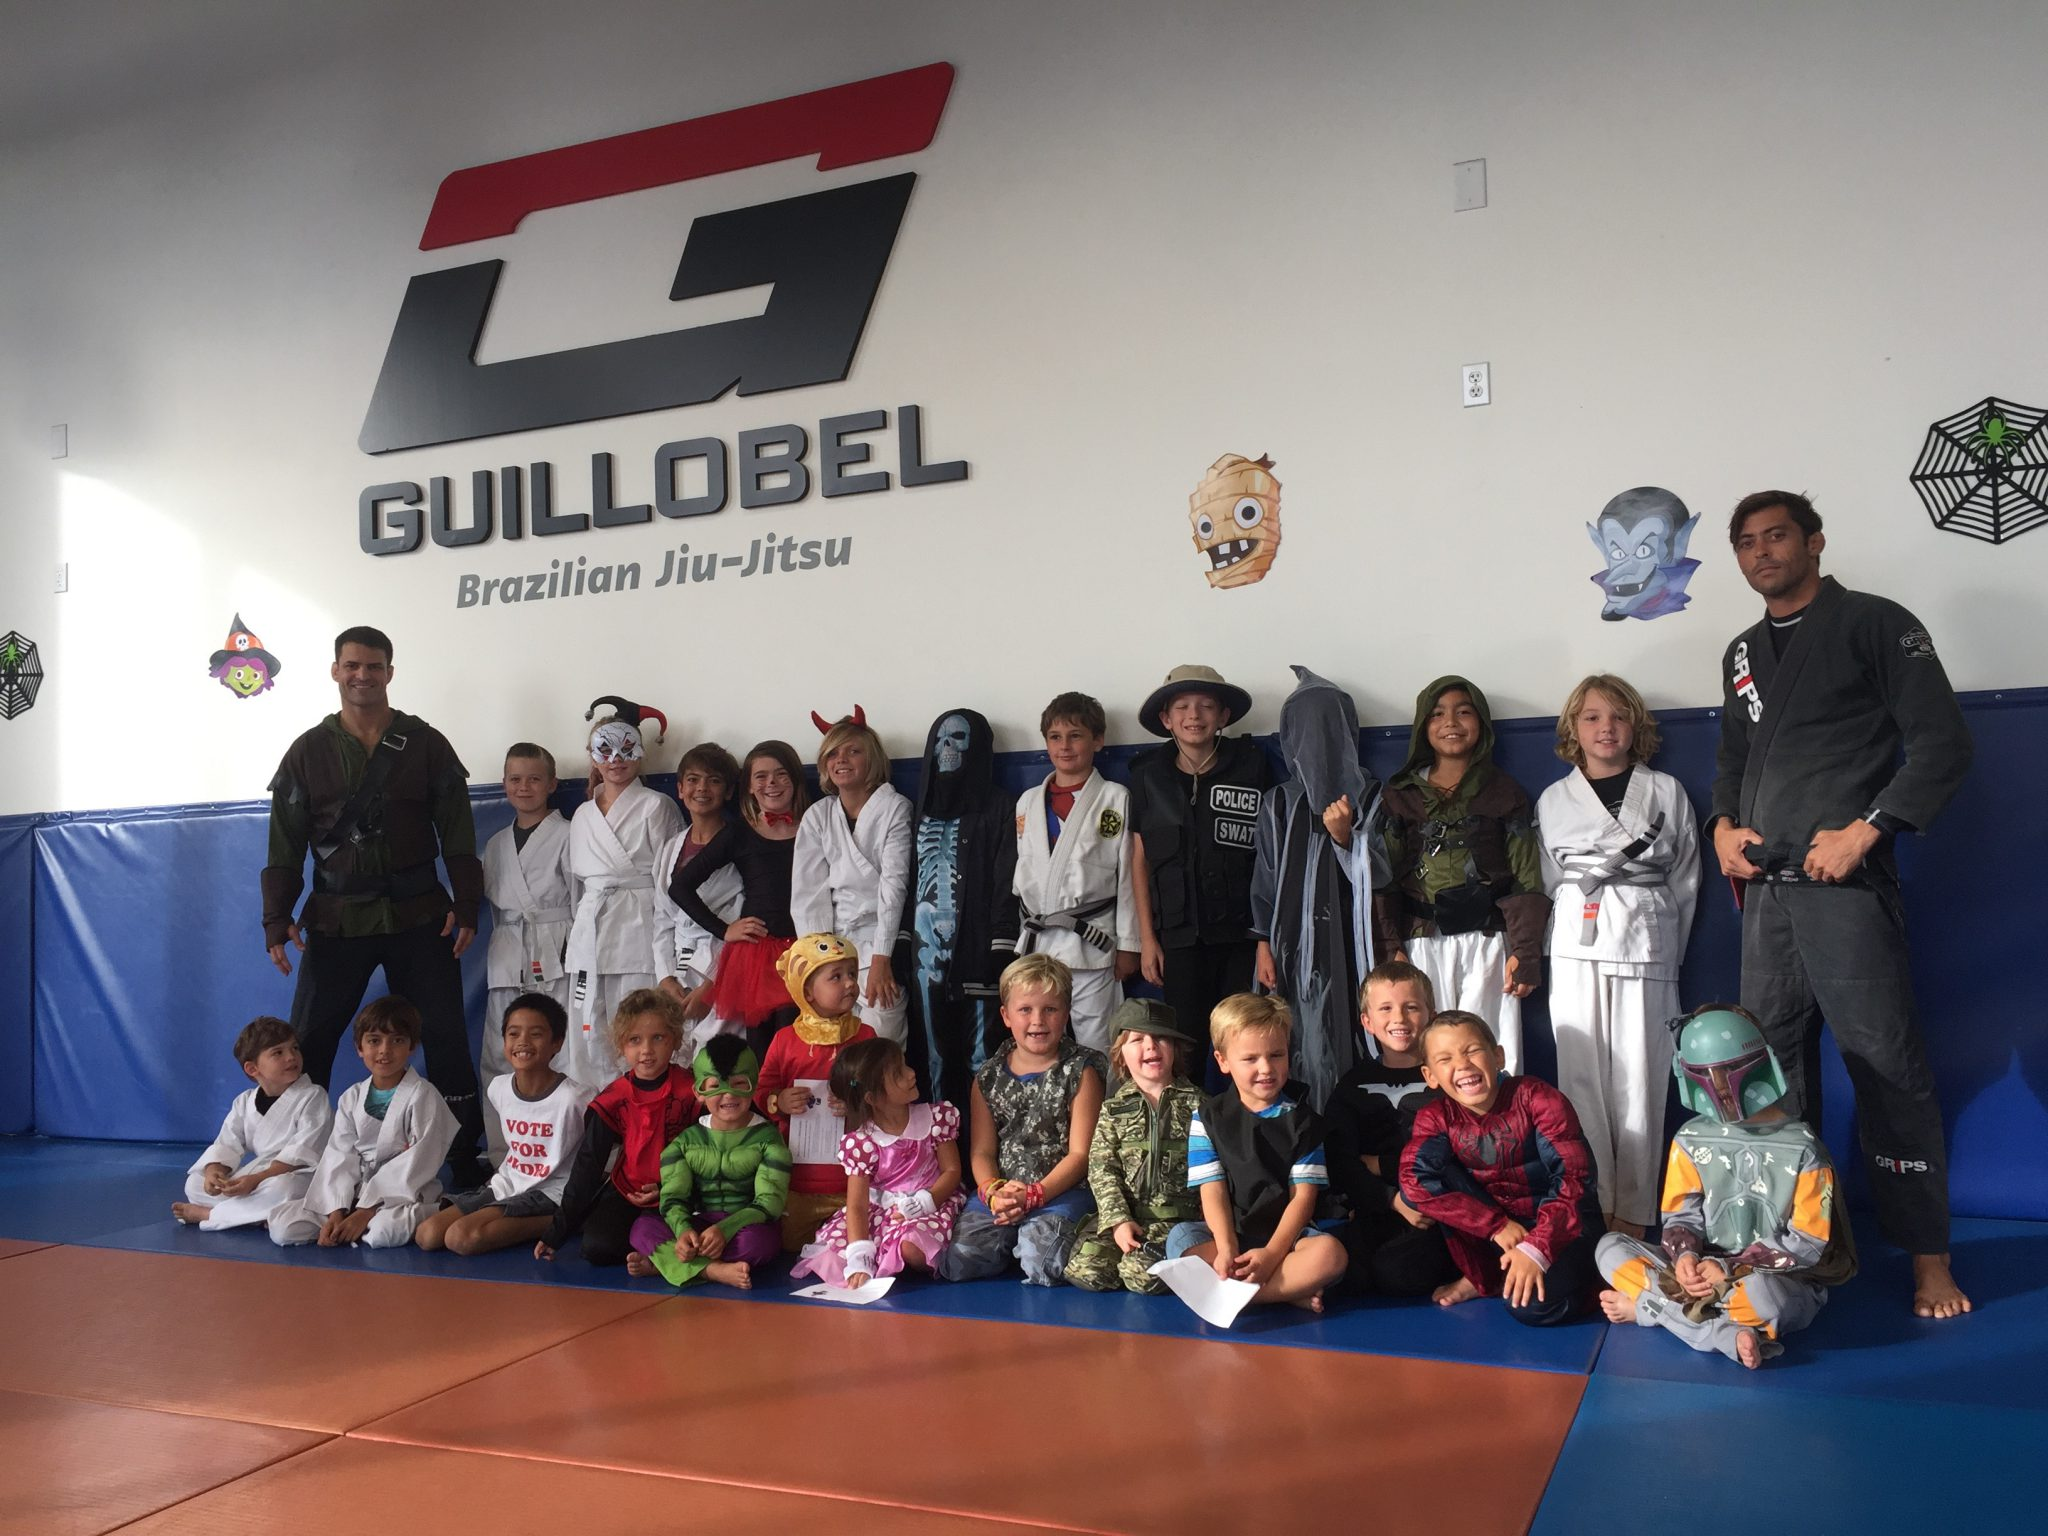 Blog - Page 3 of 25 - Guillobel Brazilian Jiu-Jitsu and Kids Martial